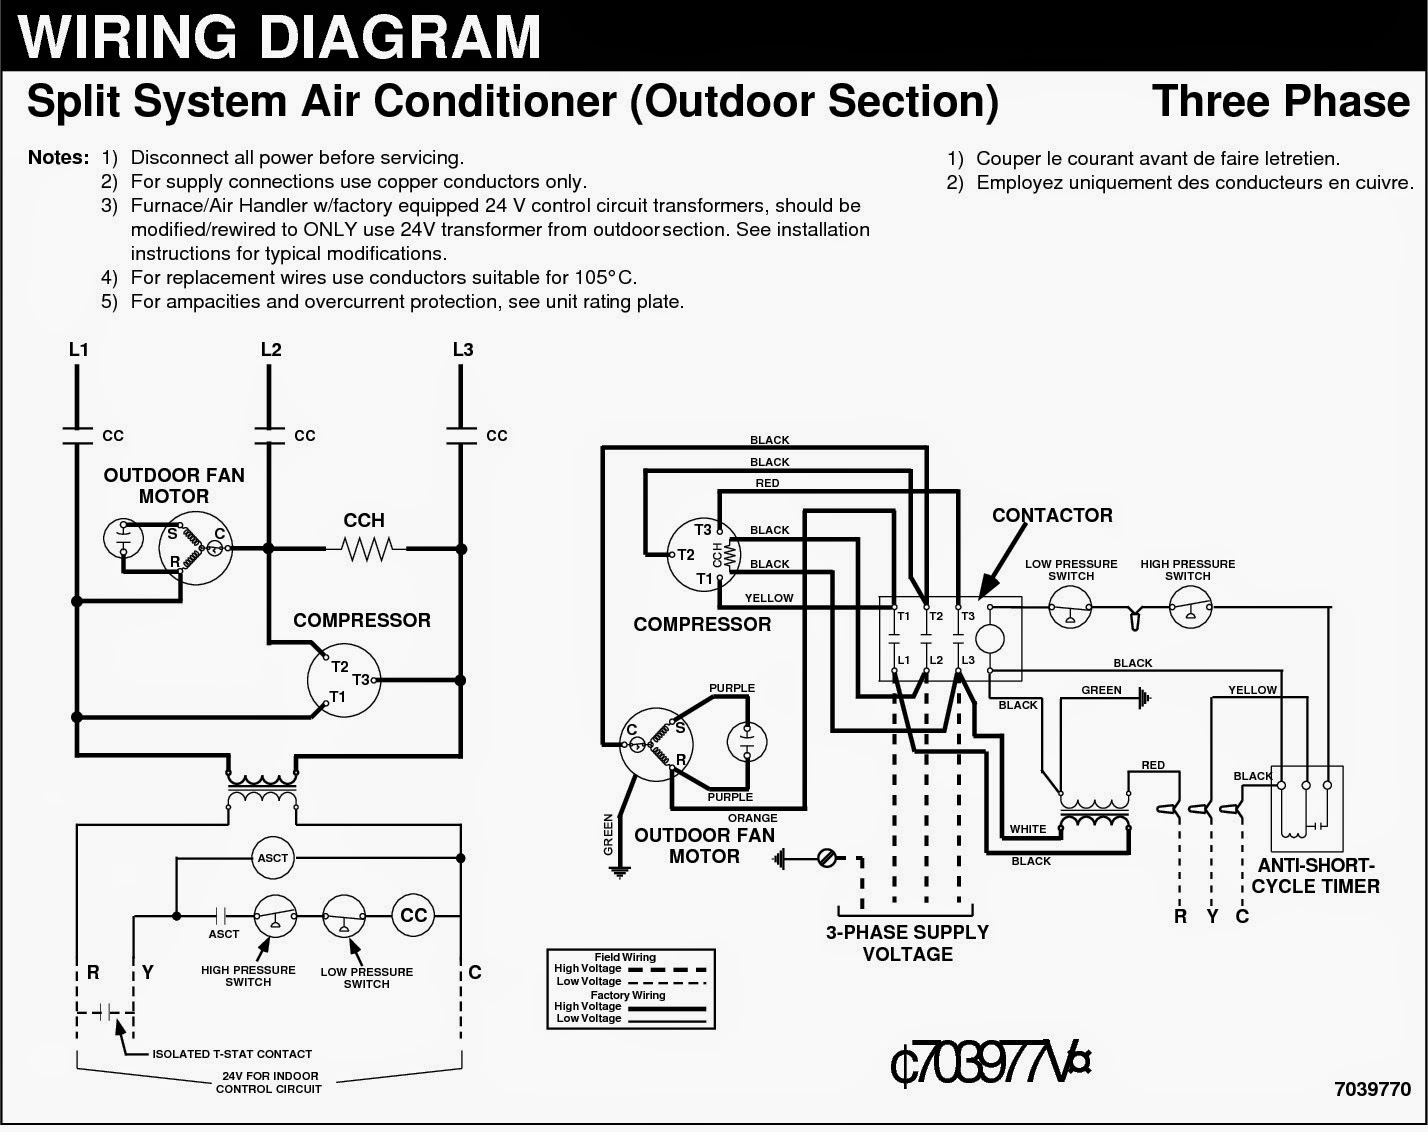 Electrical wiring diagrams for air conditioning systems part two fig13 split air cooling units three phase electrical wiring diagram pooptronica